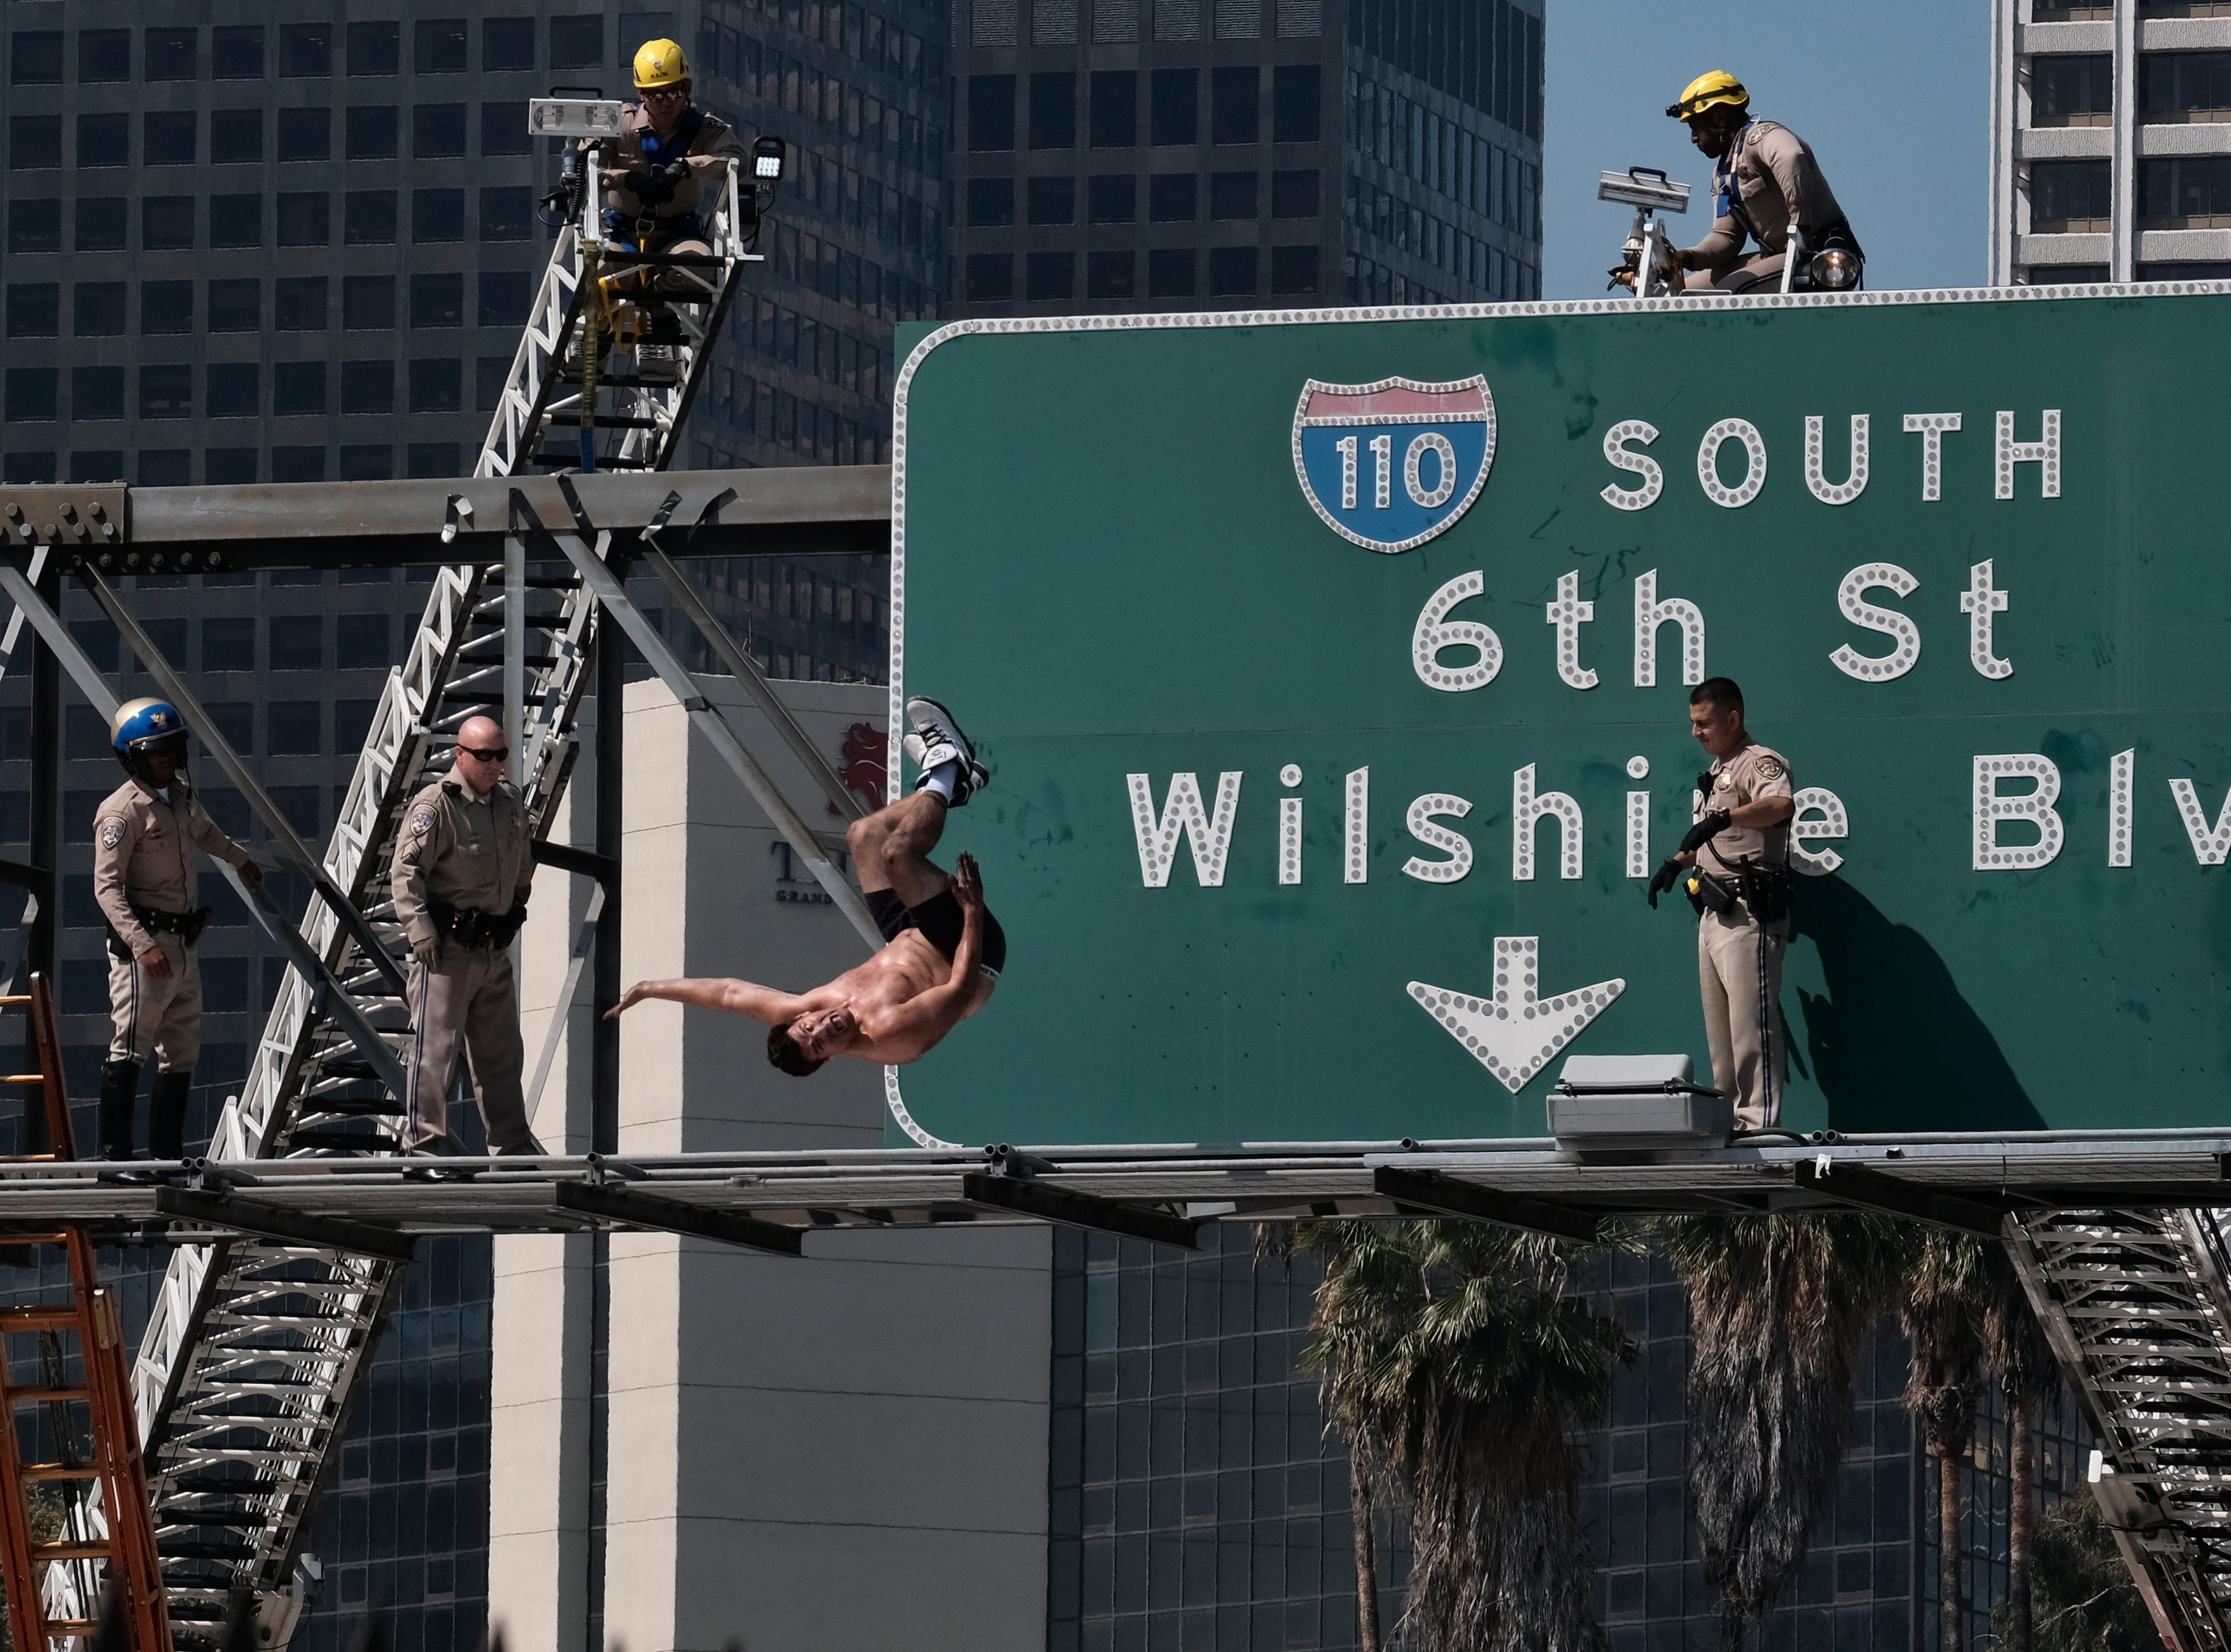 June 27, 2018: California Highway Patrol officers watch as a man jumps from a highway sign in downtown Los Angeles. The man suspended banners, one about fighting pollution, after climbing onto the sign over State Route 110 during the morning rush hour. The man did a backflip from the sign and landed on a huge inflated airbag deployed in traffic lanes by firefighters.